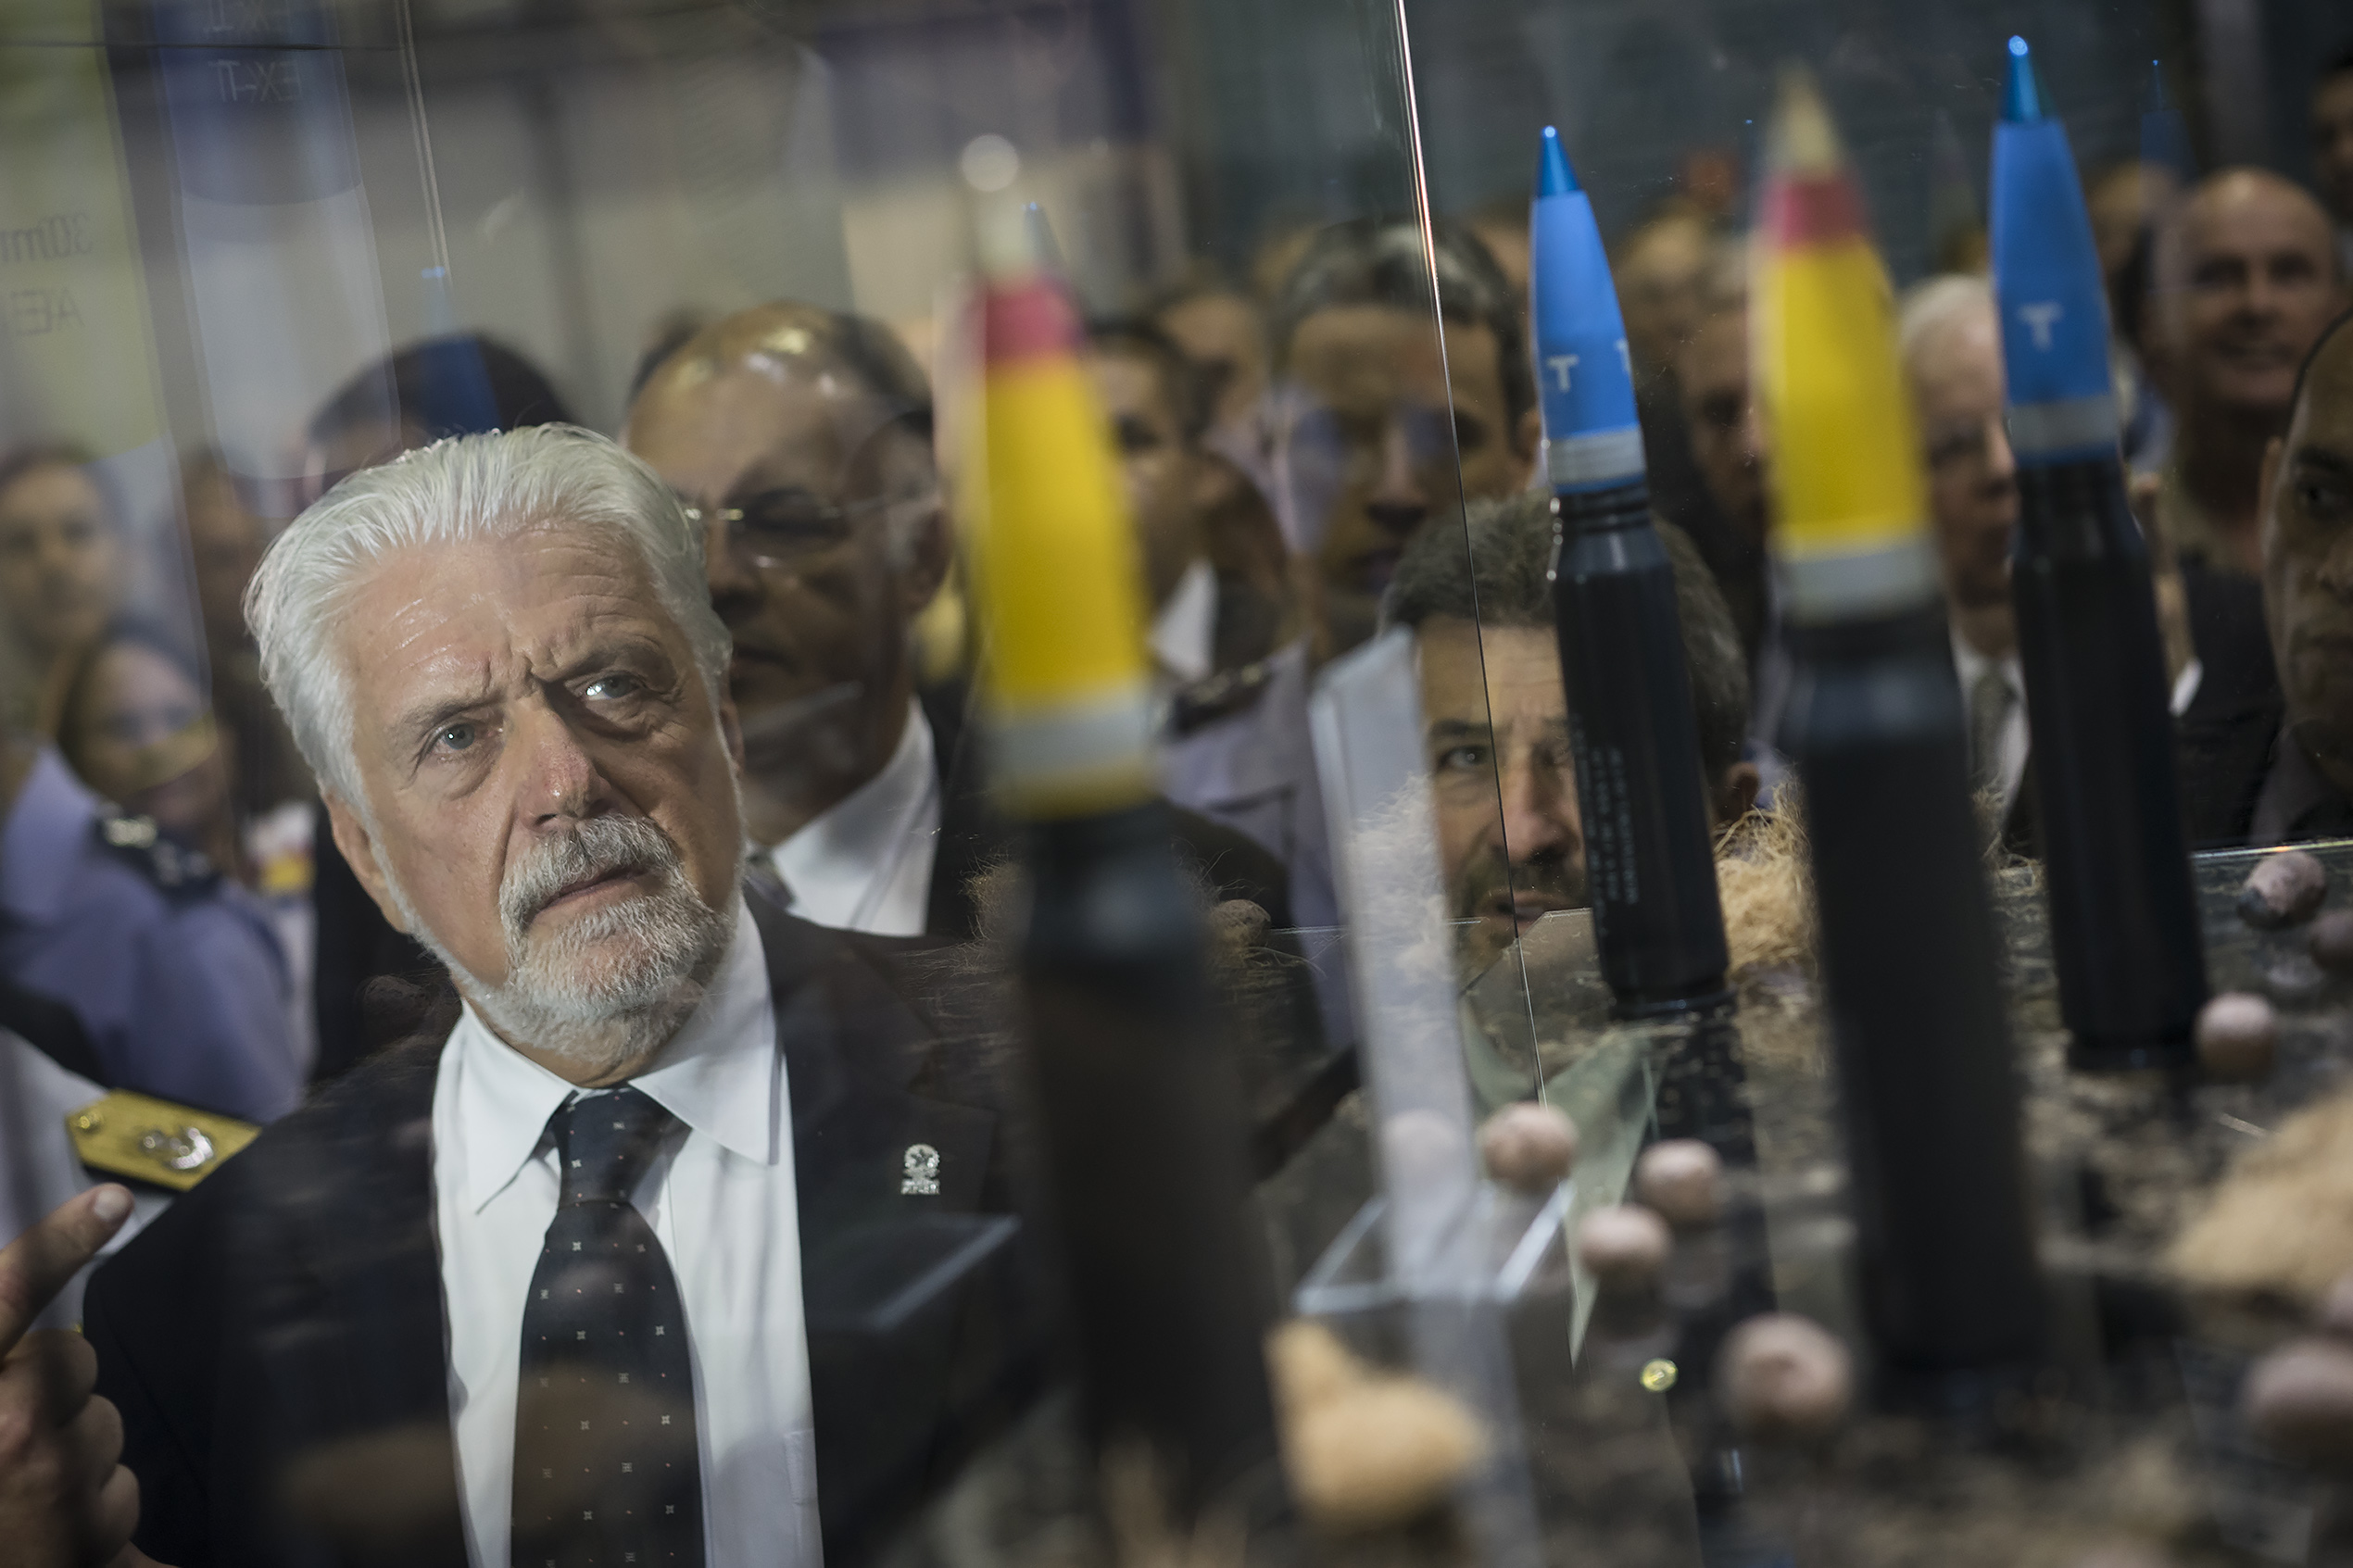 Brazil's Defense Minister Jaques Wagner looks at ammunition as he tours the LAAD Defense and Security International Exhibition in Rio de Janeiro, Brazil, Tuesday, April 14, 2015. (AP Photo/Felipe Dana)